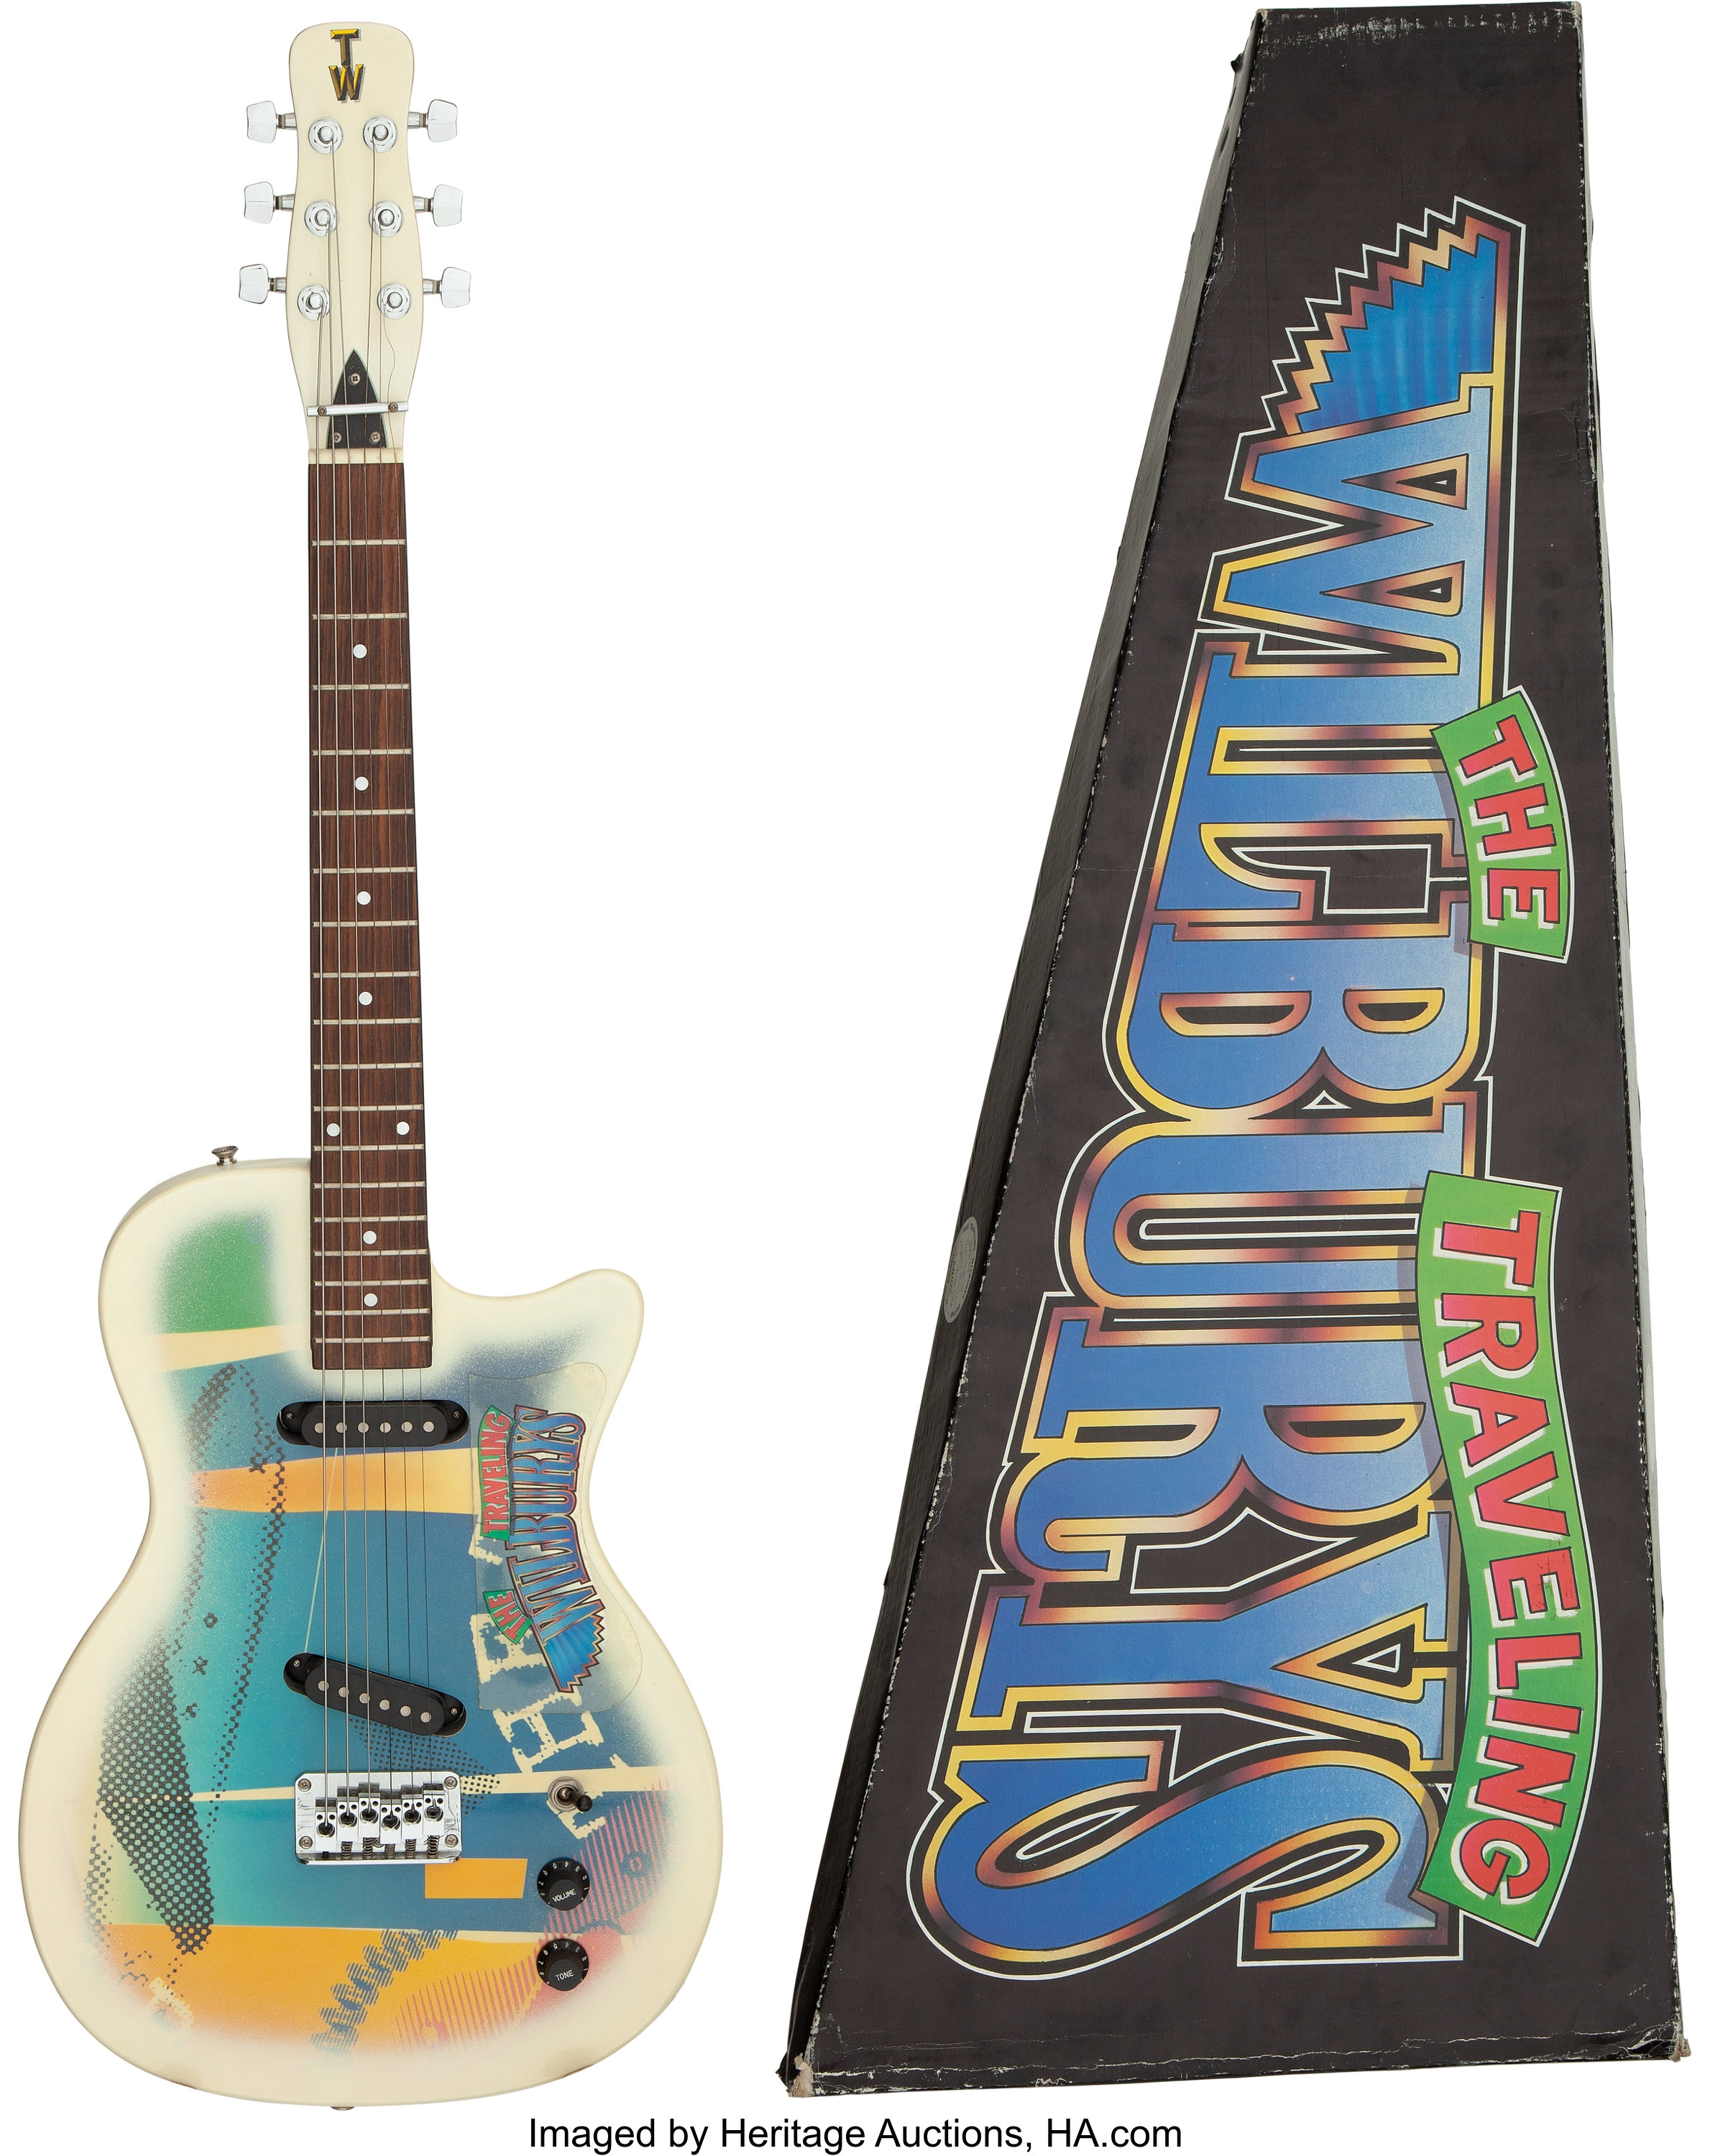 Gretsch Traveling Wilburys Tw 500 Electric Guitar New In Original Lot 89492 Heritage Auctions